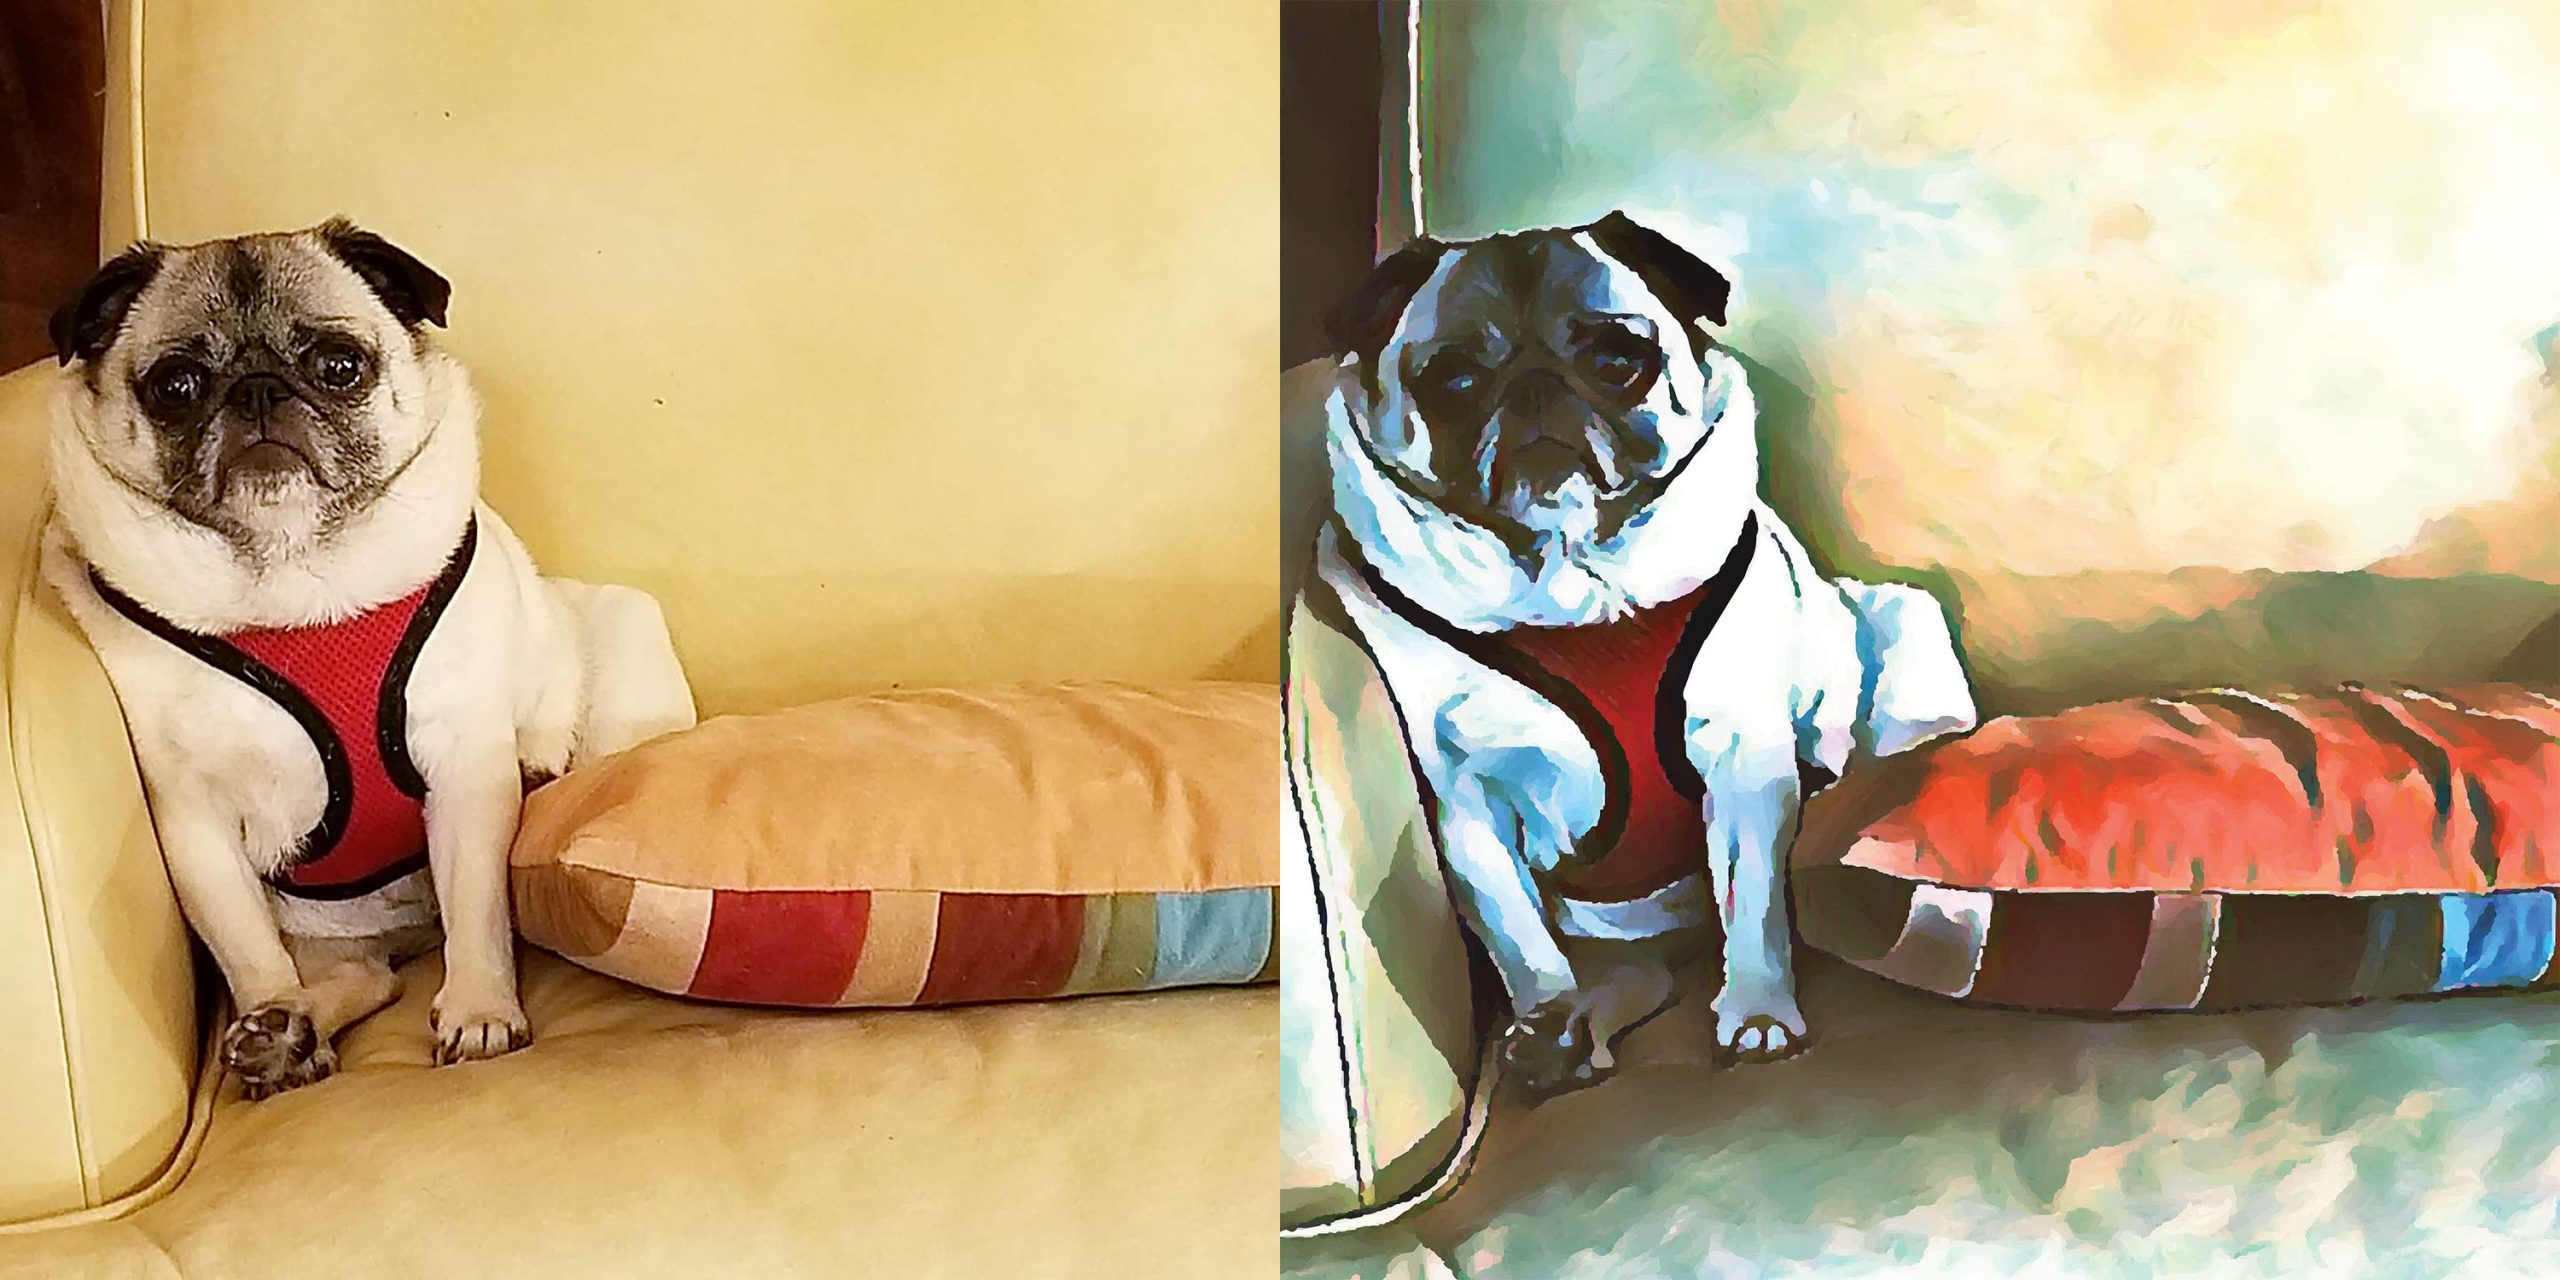 Before and after stylized image of a pug sitting on a couch